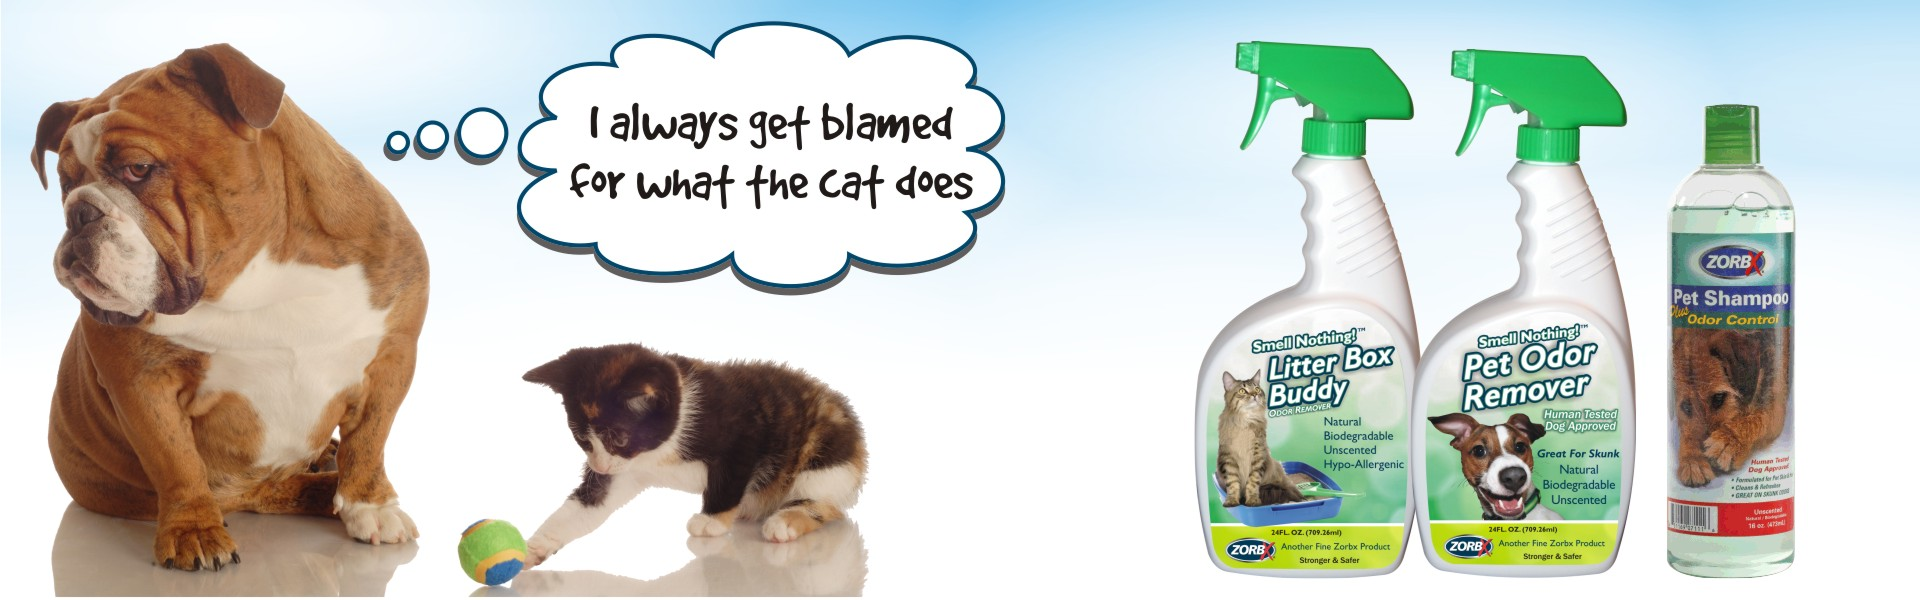 Remove pet odors with ZORBX